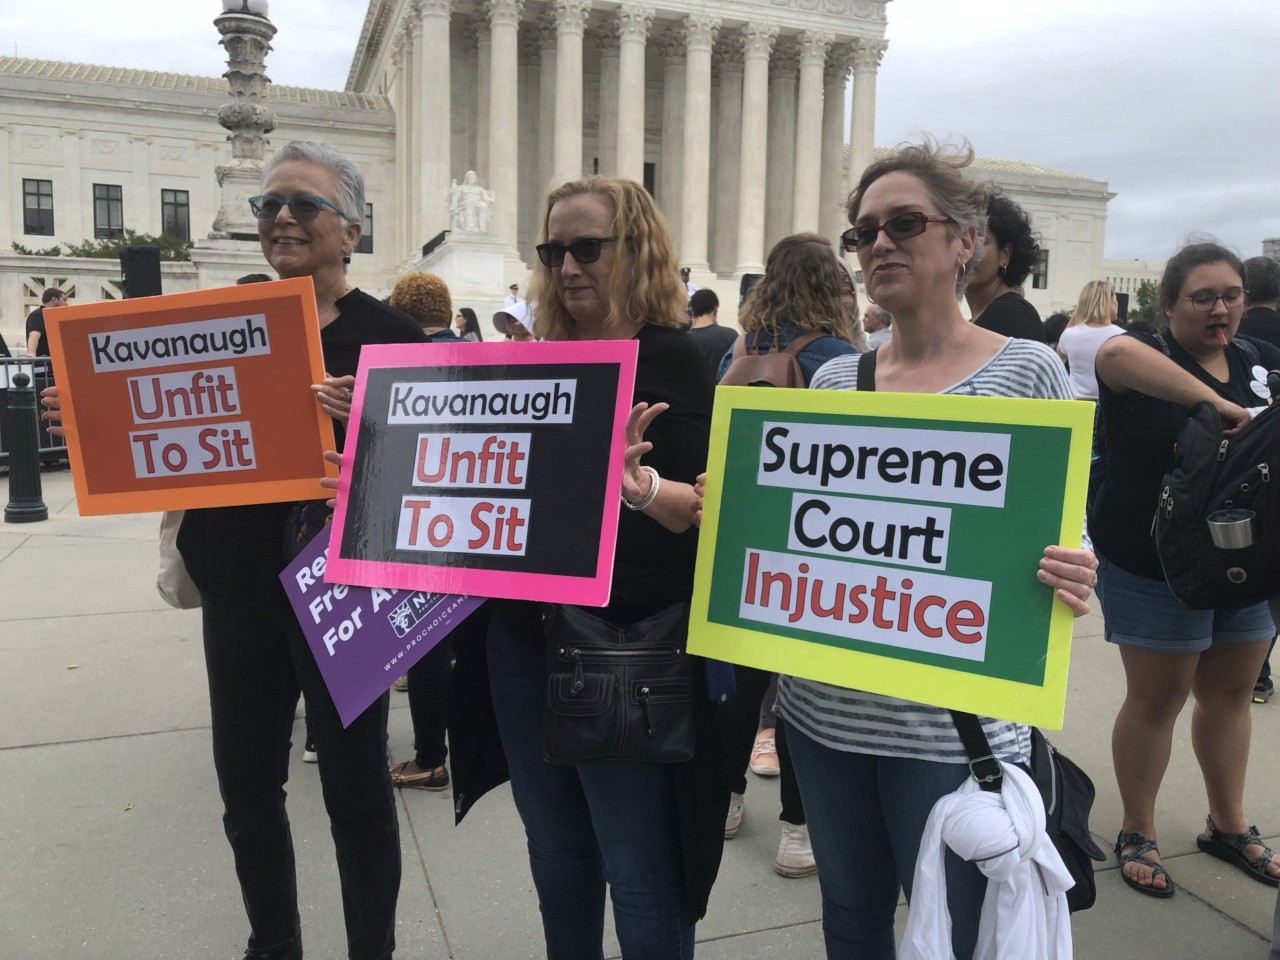 Supreme Court begins new term with cases on abortion, LGBT rights, immigration